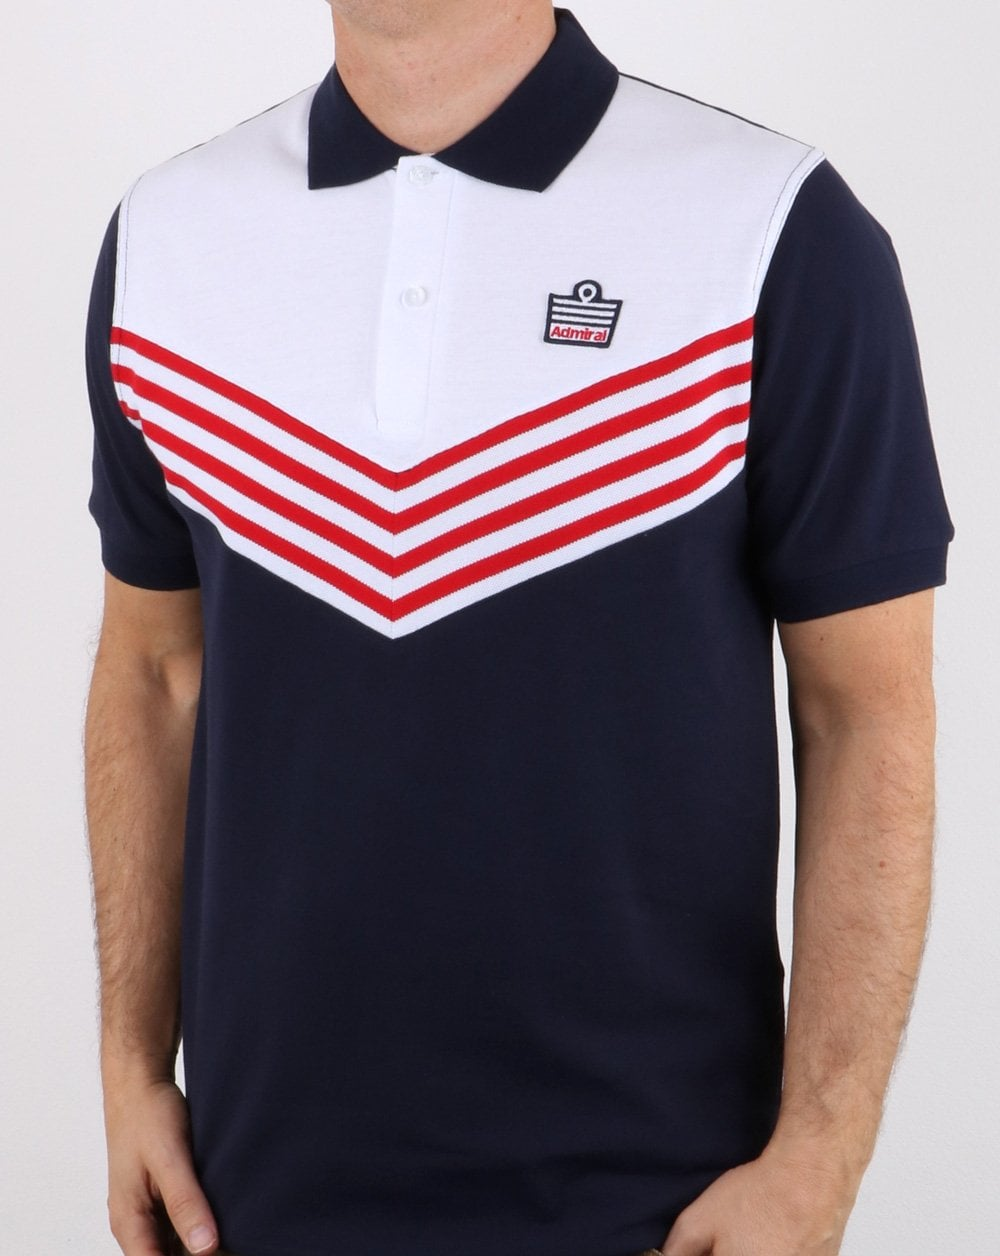 1285af0d9 Admiral 1976 Polo Shirt Navy/Red, sportswear, mens, retro